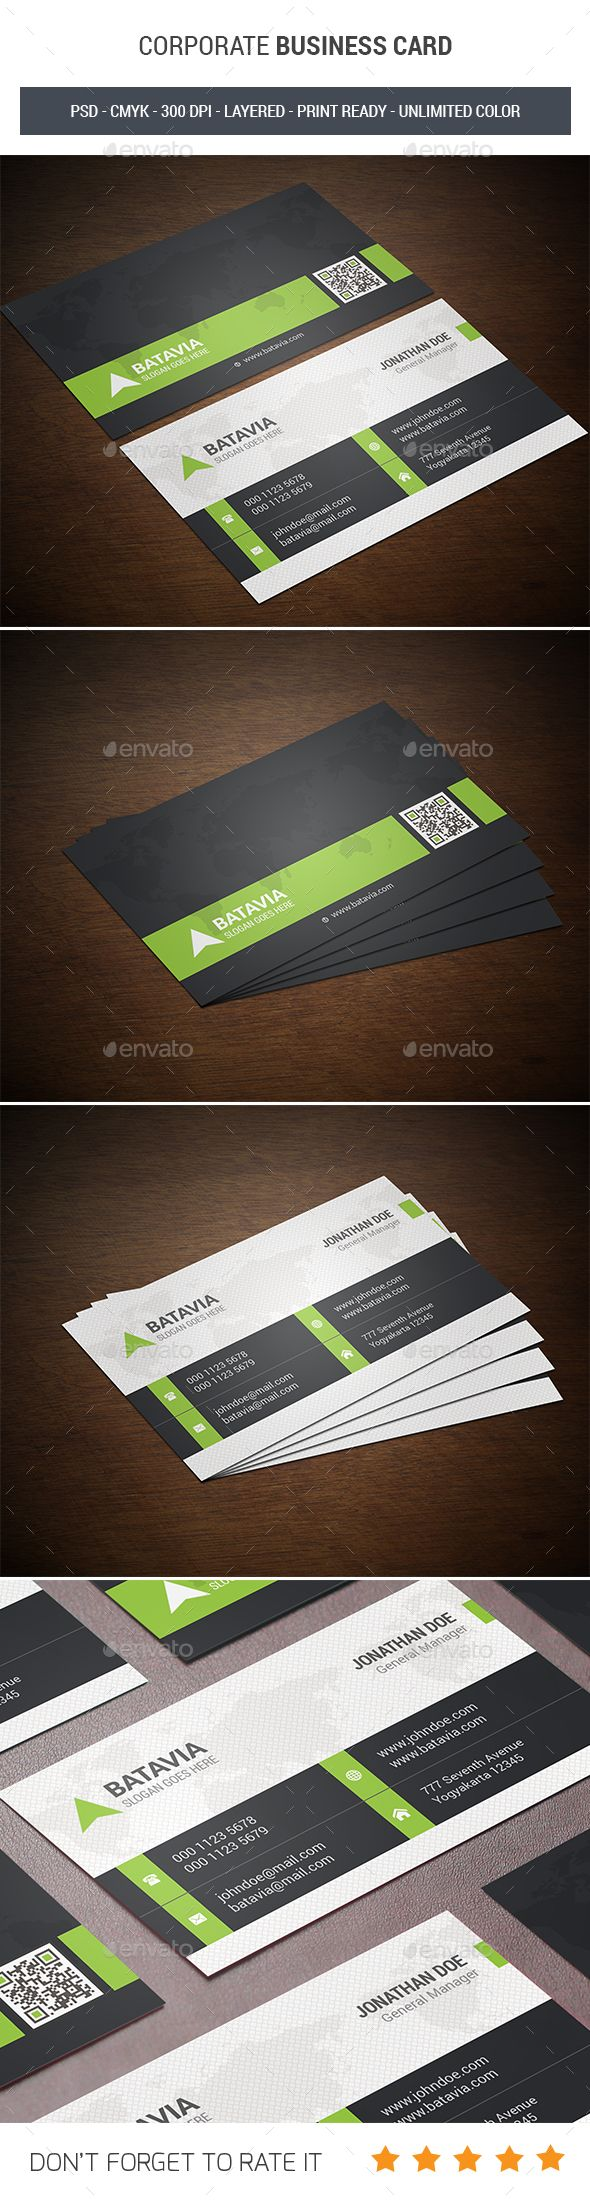 175 Best Design Ideas Business Cards Images On Pinterest Business